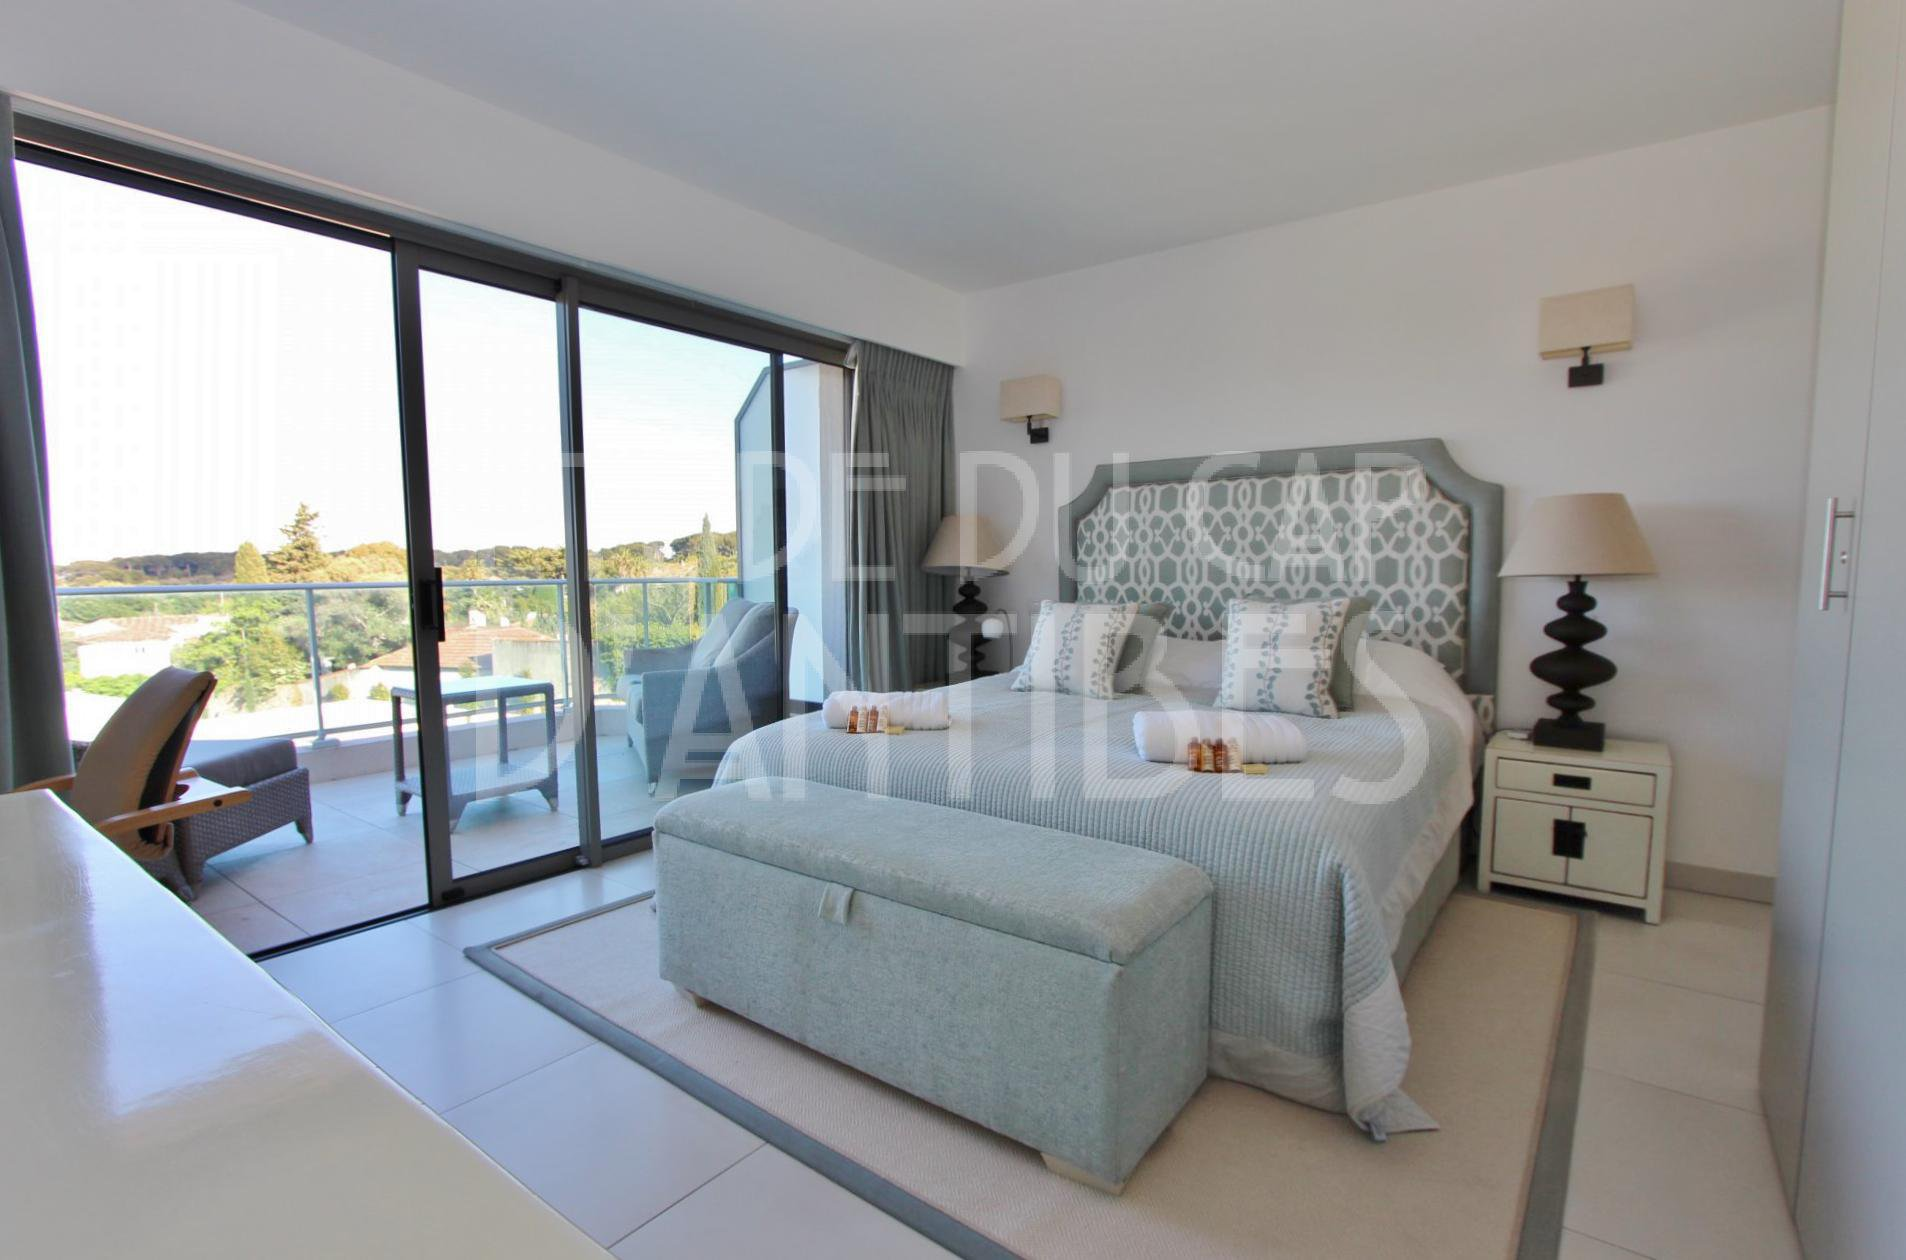 Rent - Duplex - Cap d'Antibes